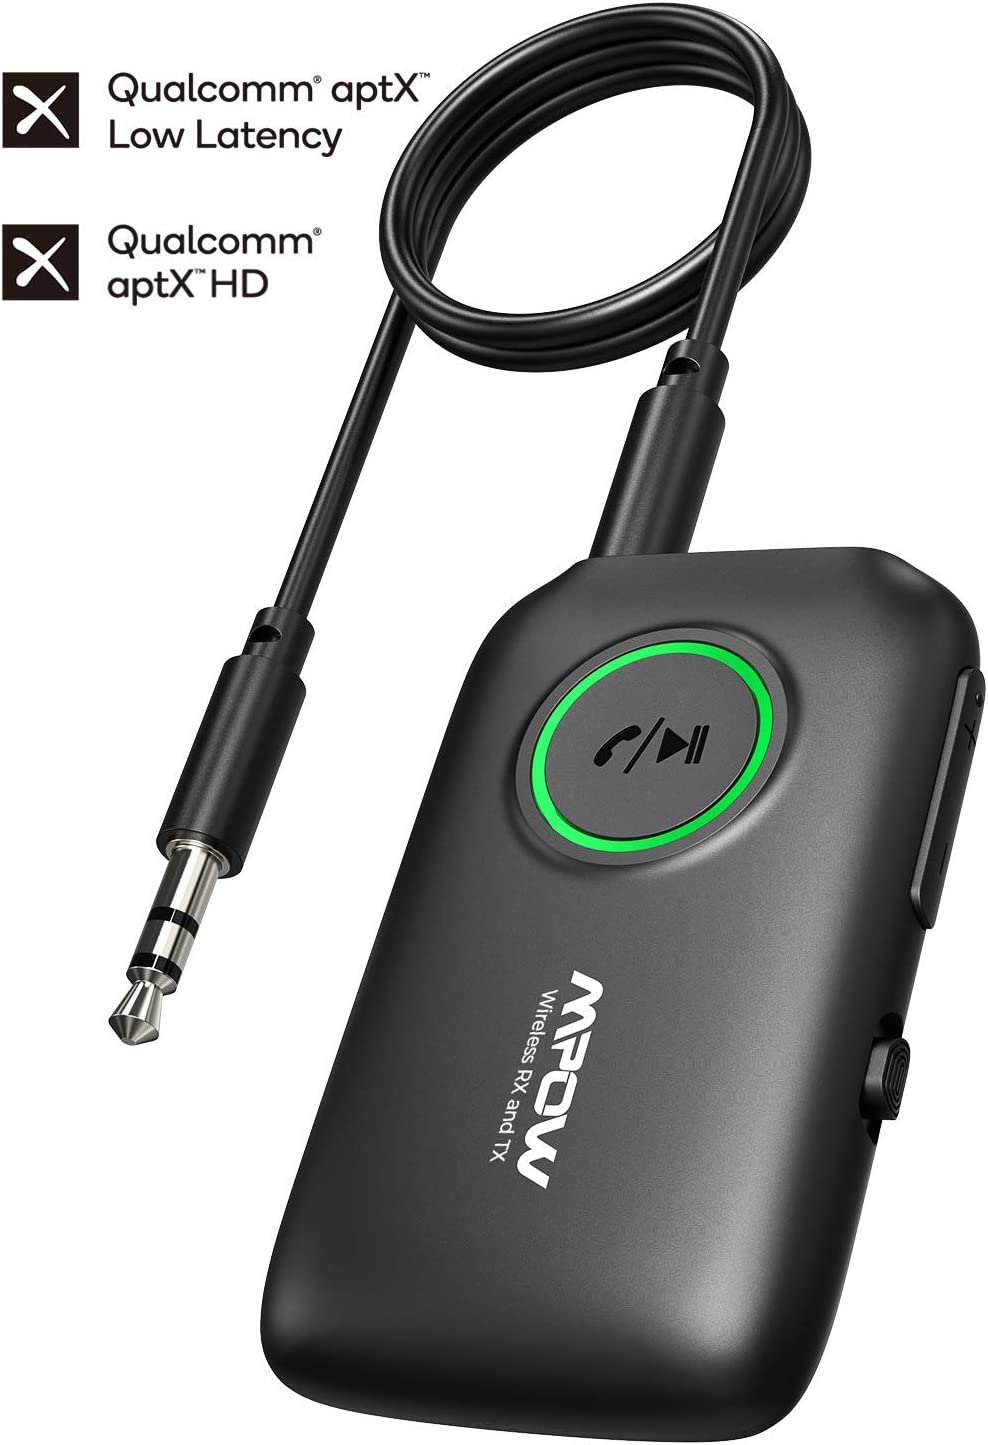 Mpow Bluetooth 5.0 Transmitter Receiver, 2-in-1 Wireless Bluetooth Adapter with aptX Low Latency, aptX HD, Noise-Cancelling, Pair 2 Devices, for TV/Home Sound System/Car/Nintendo Switch